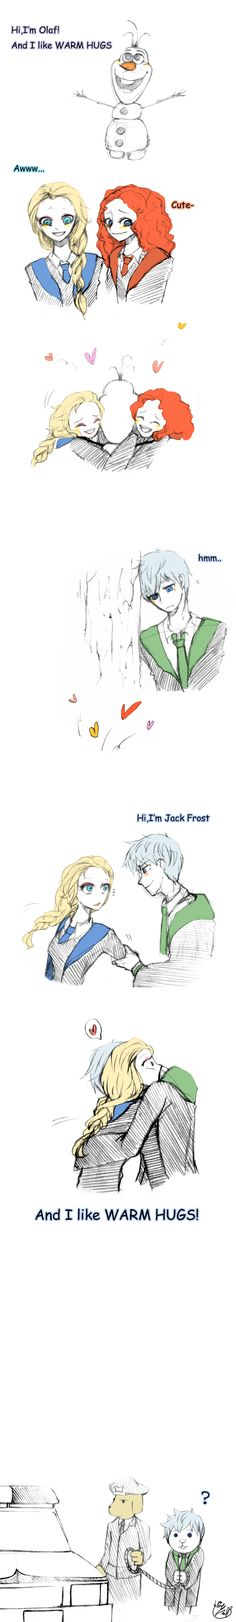 Warm hugs by Lime-Hael on deviantART | Frozen's Elsa and Olaf, Brave's Merida, and Rise of the Guardians' Jack Frost | J.K. Rowling's Harry Potter